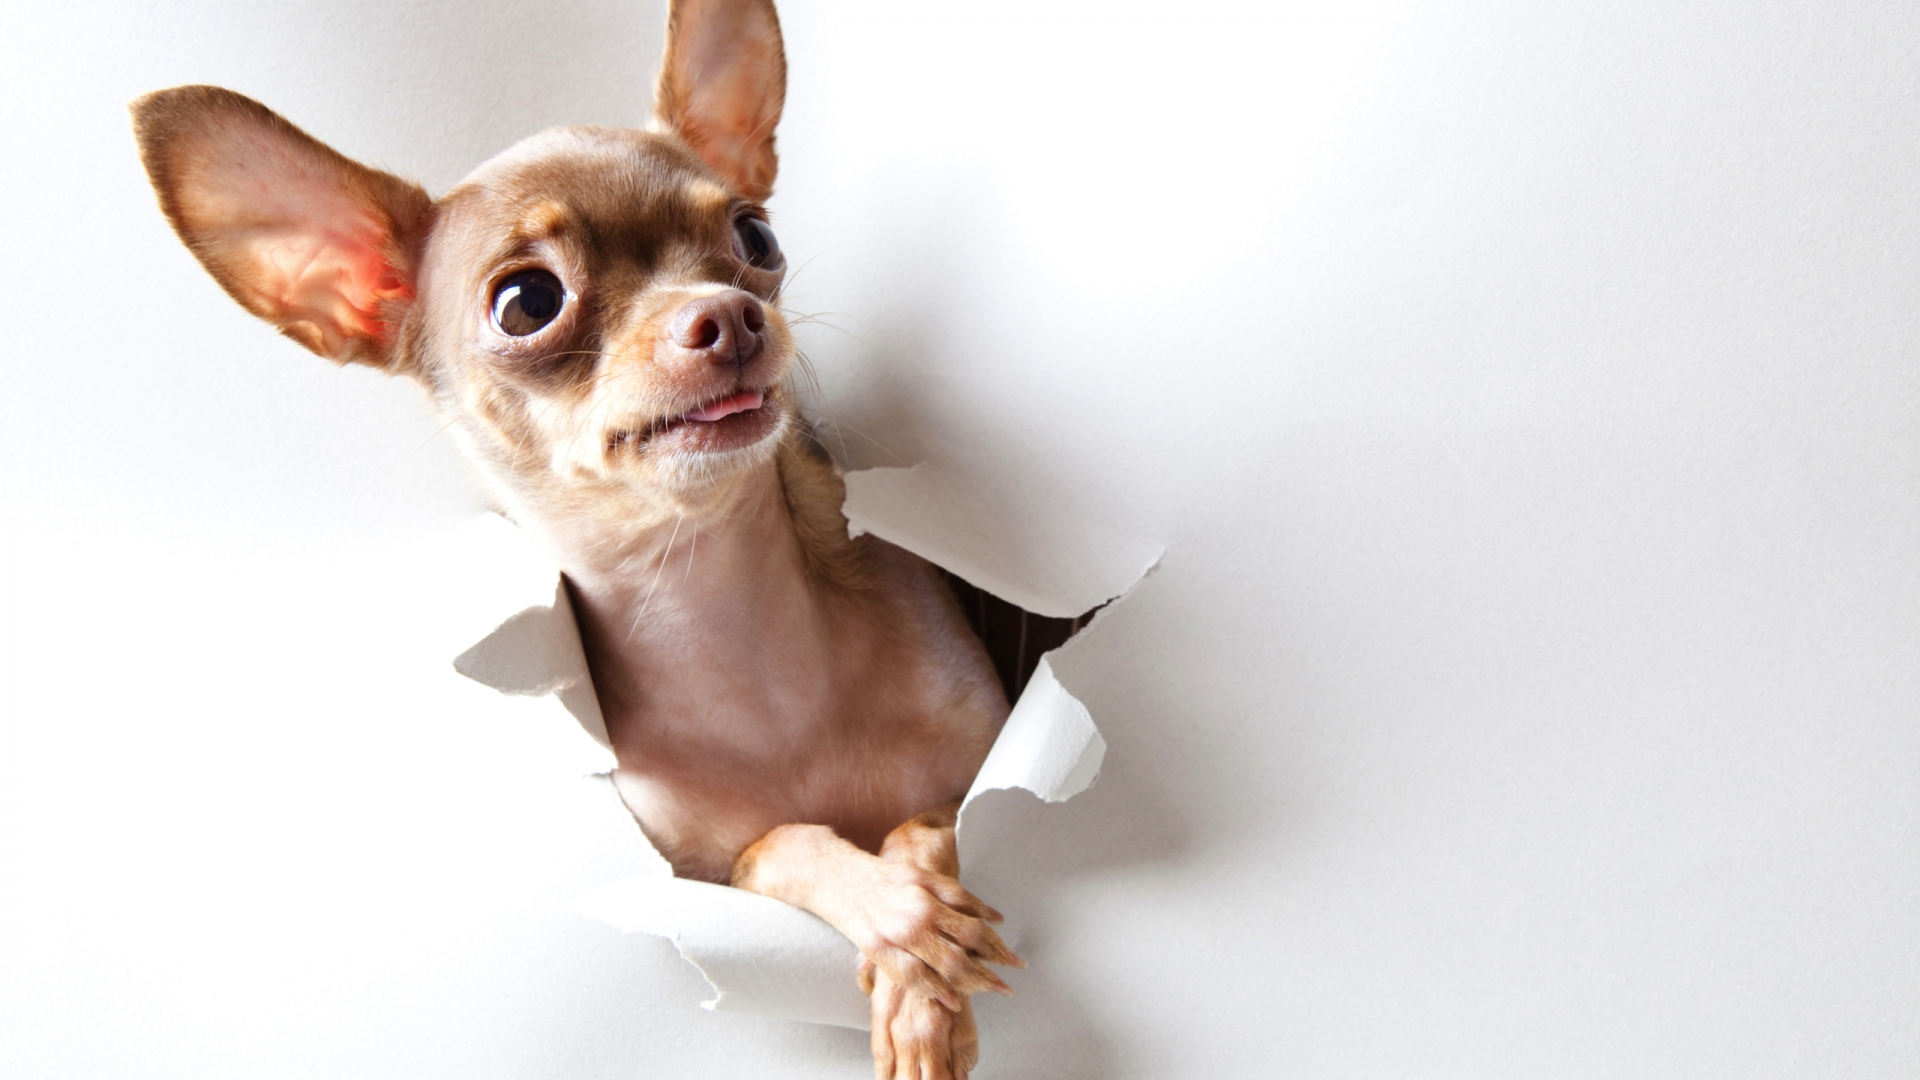 Chihuahua Dog Wallpaper & Picture